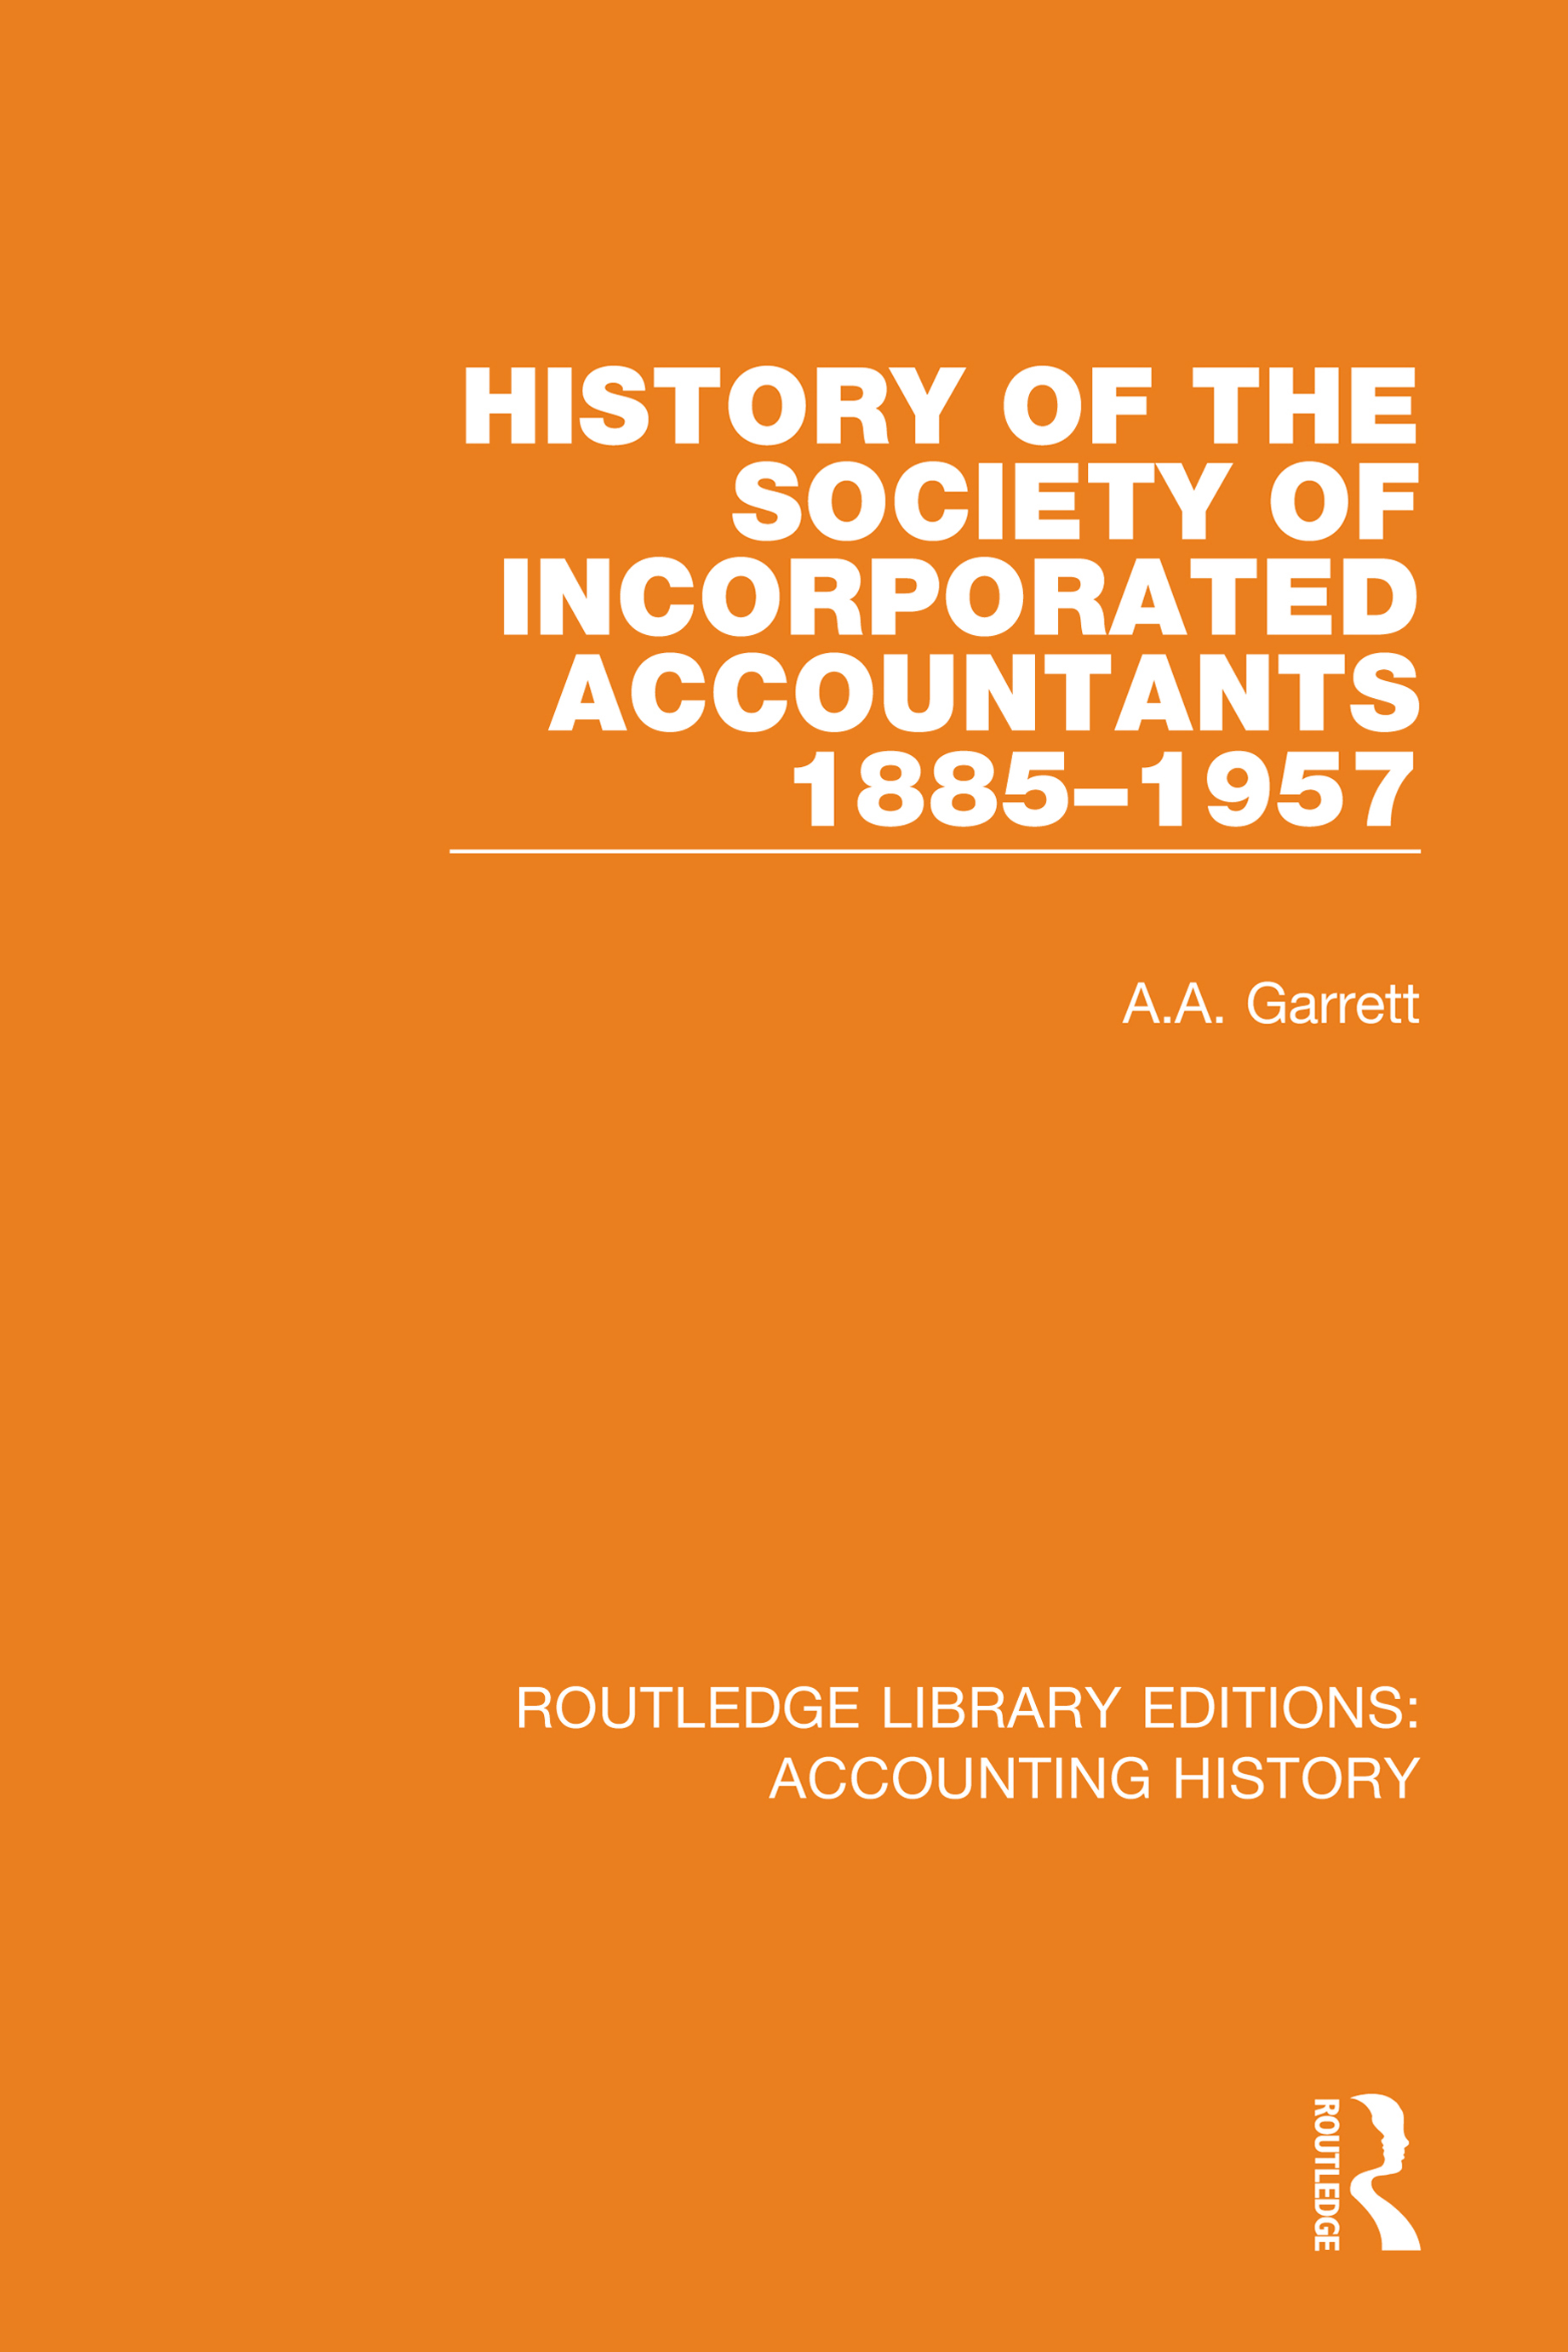 History of the Society of Incorporated Accountants 1885-1957